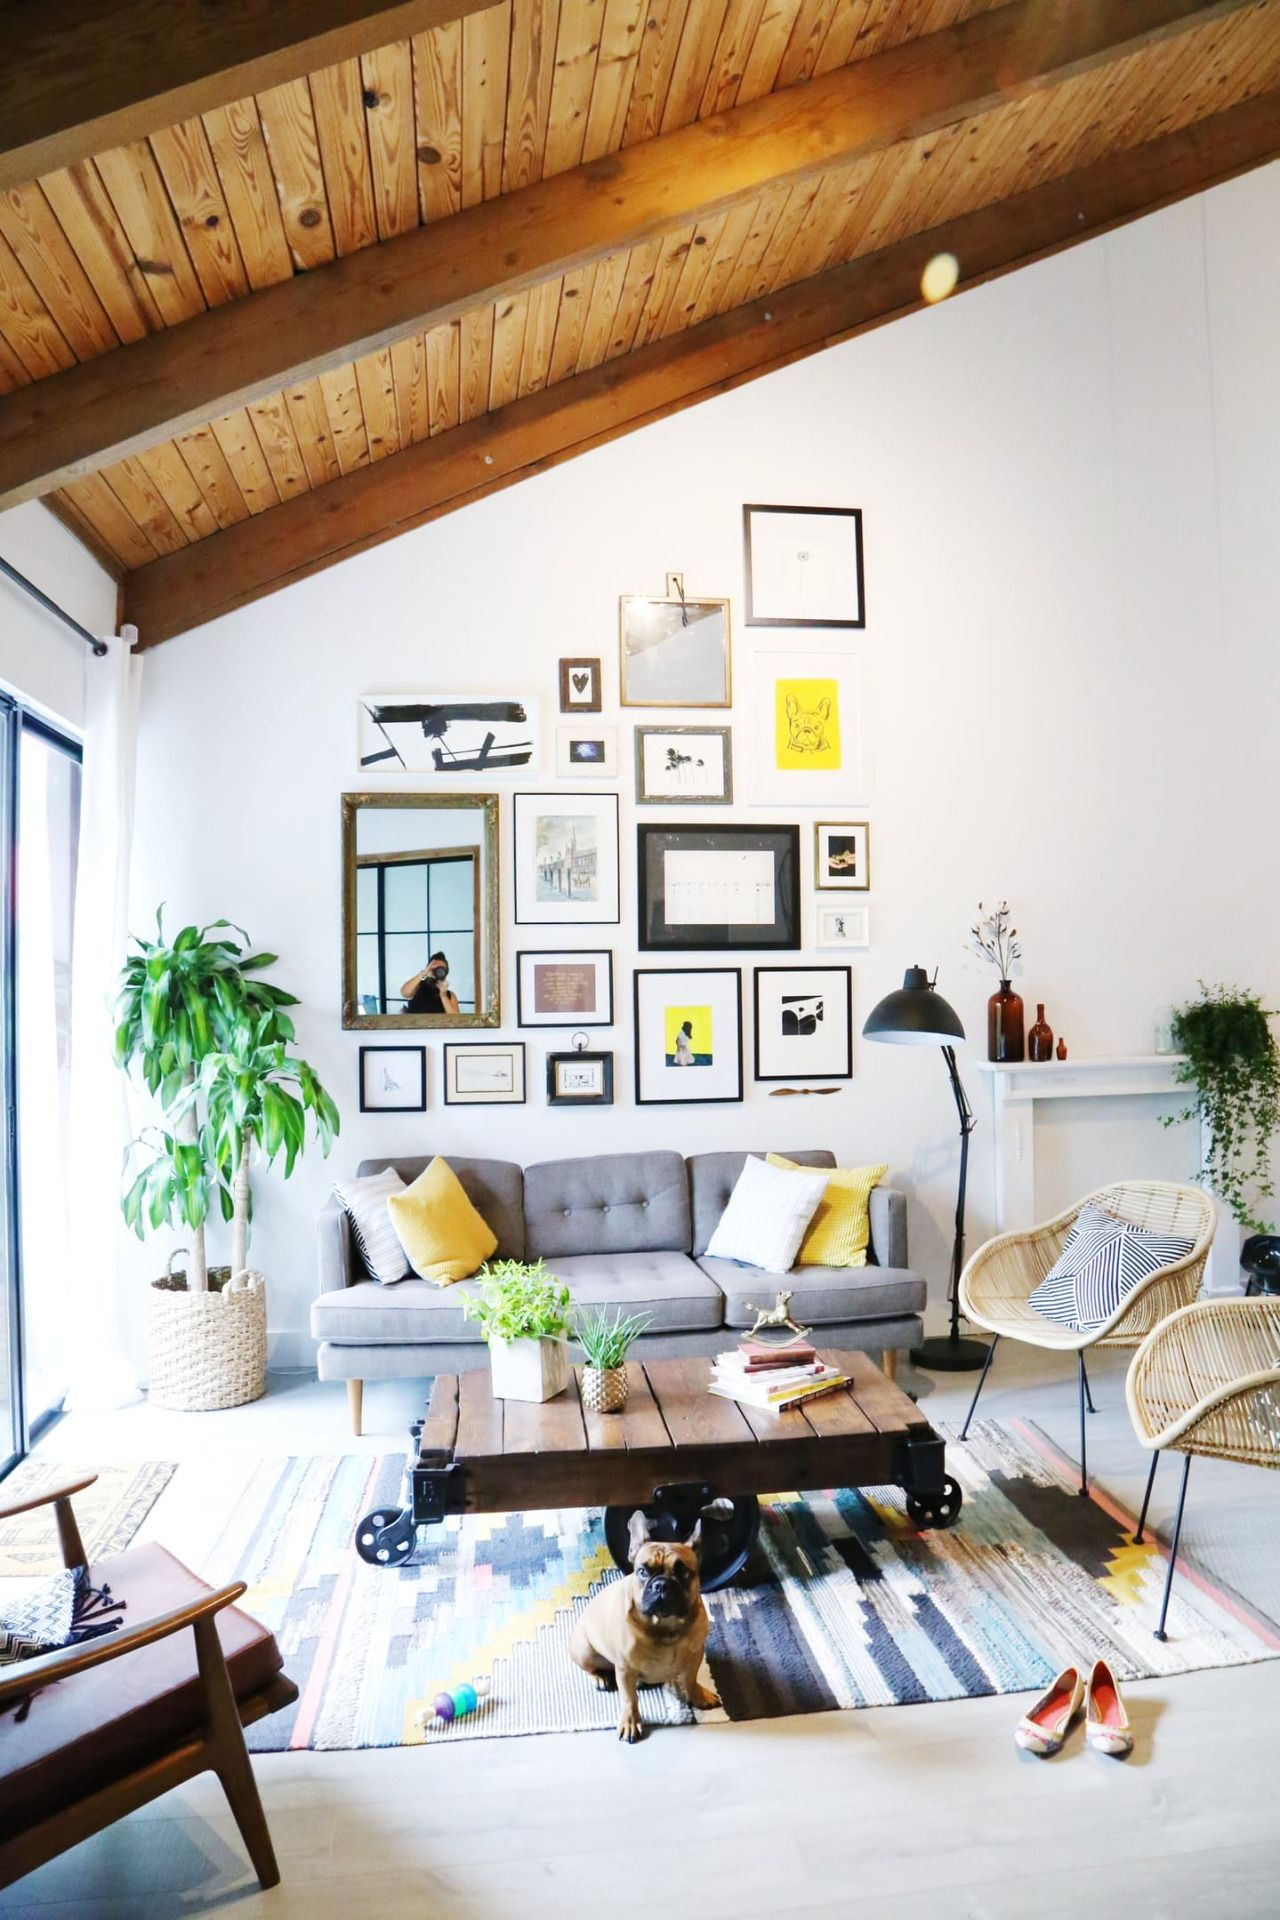 Living room with wooden ceiling   Home Decor   Pinterest   Wohnzimmer